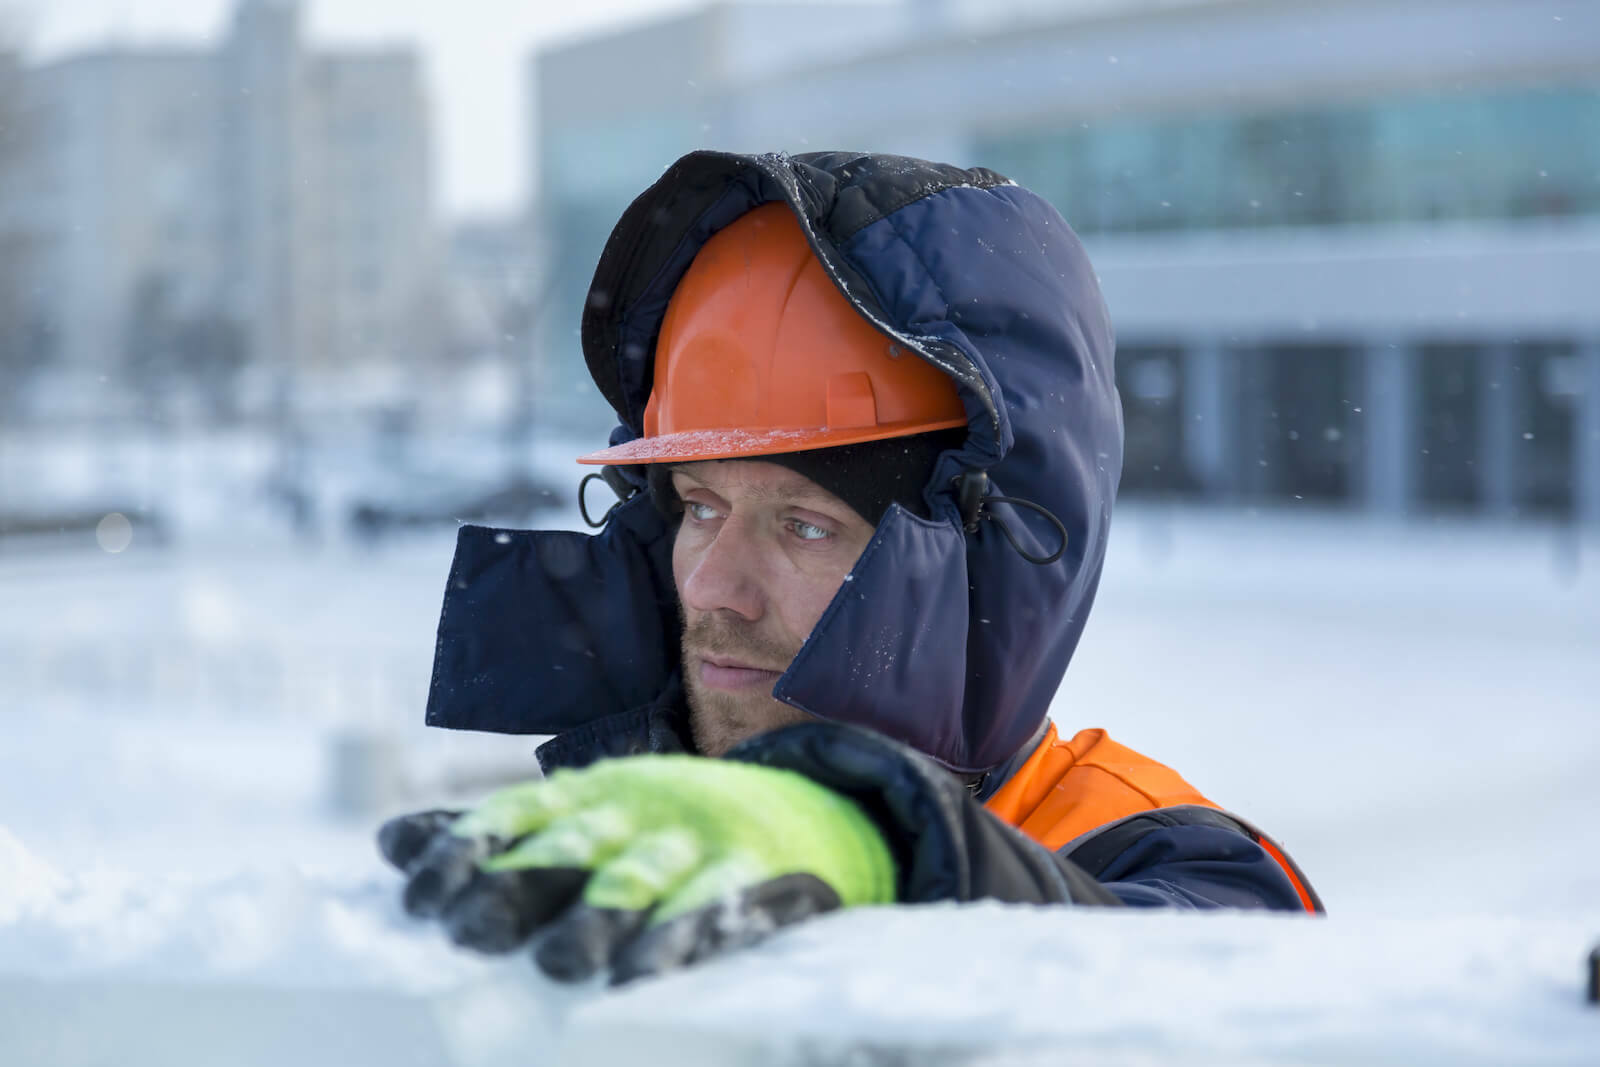 Worker in the snow wearing a hard hat